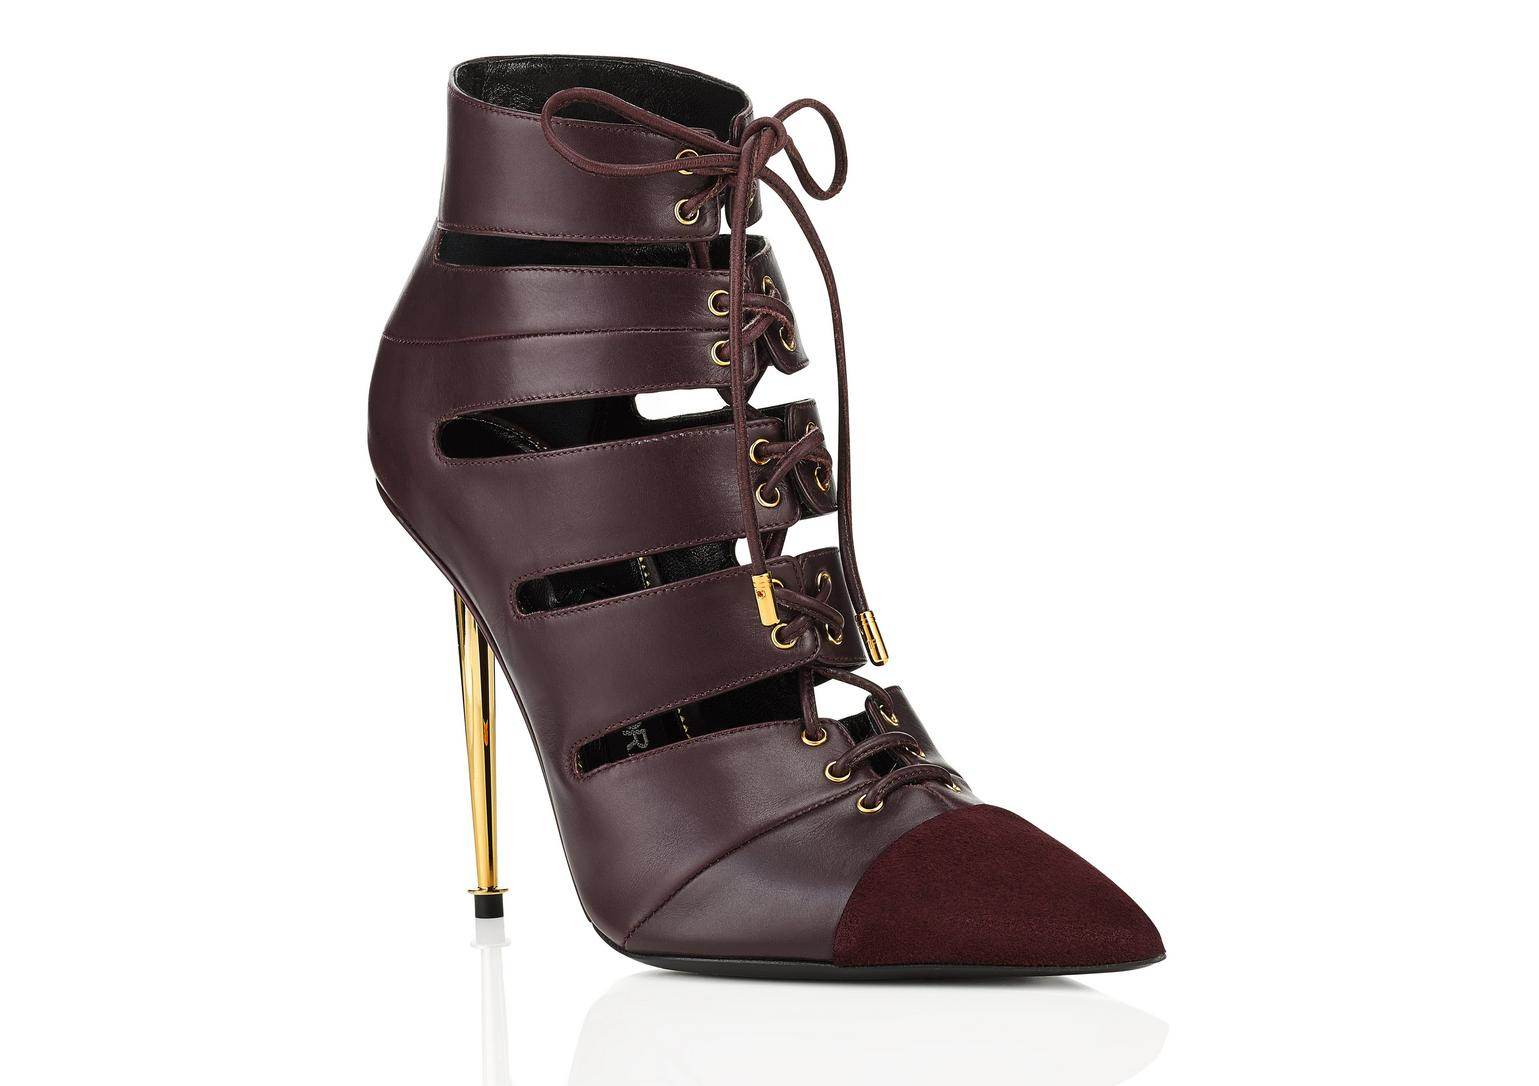 Tom Ford Lace Up Heels